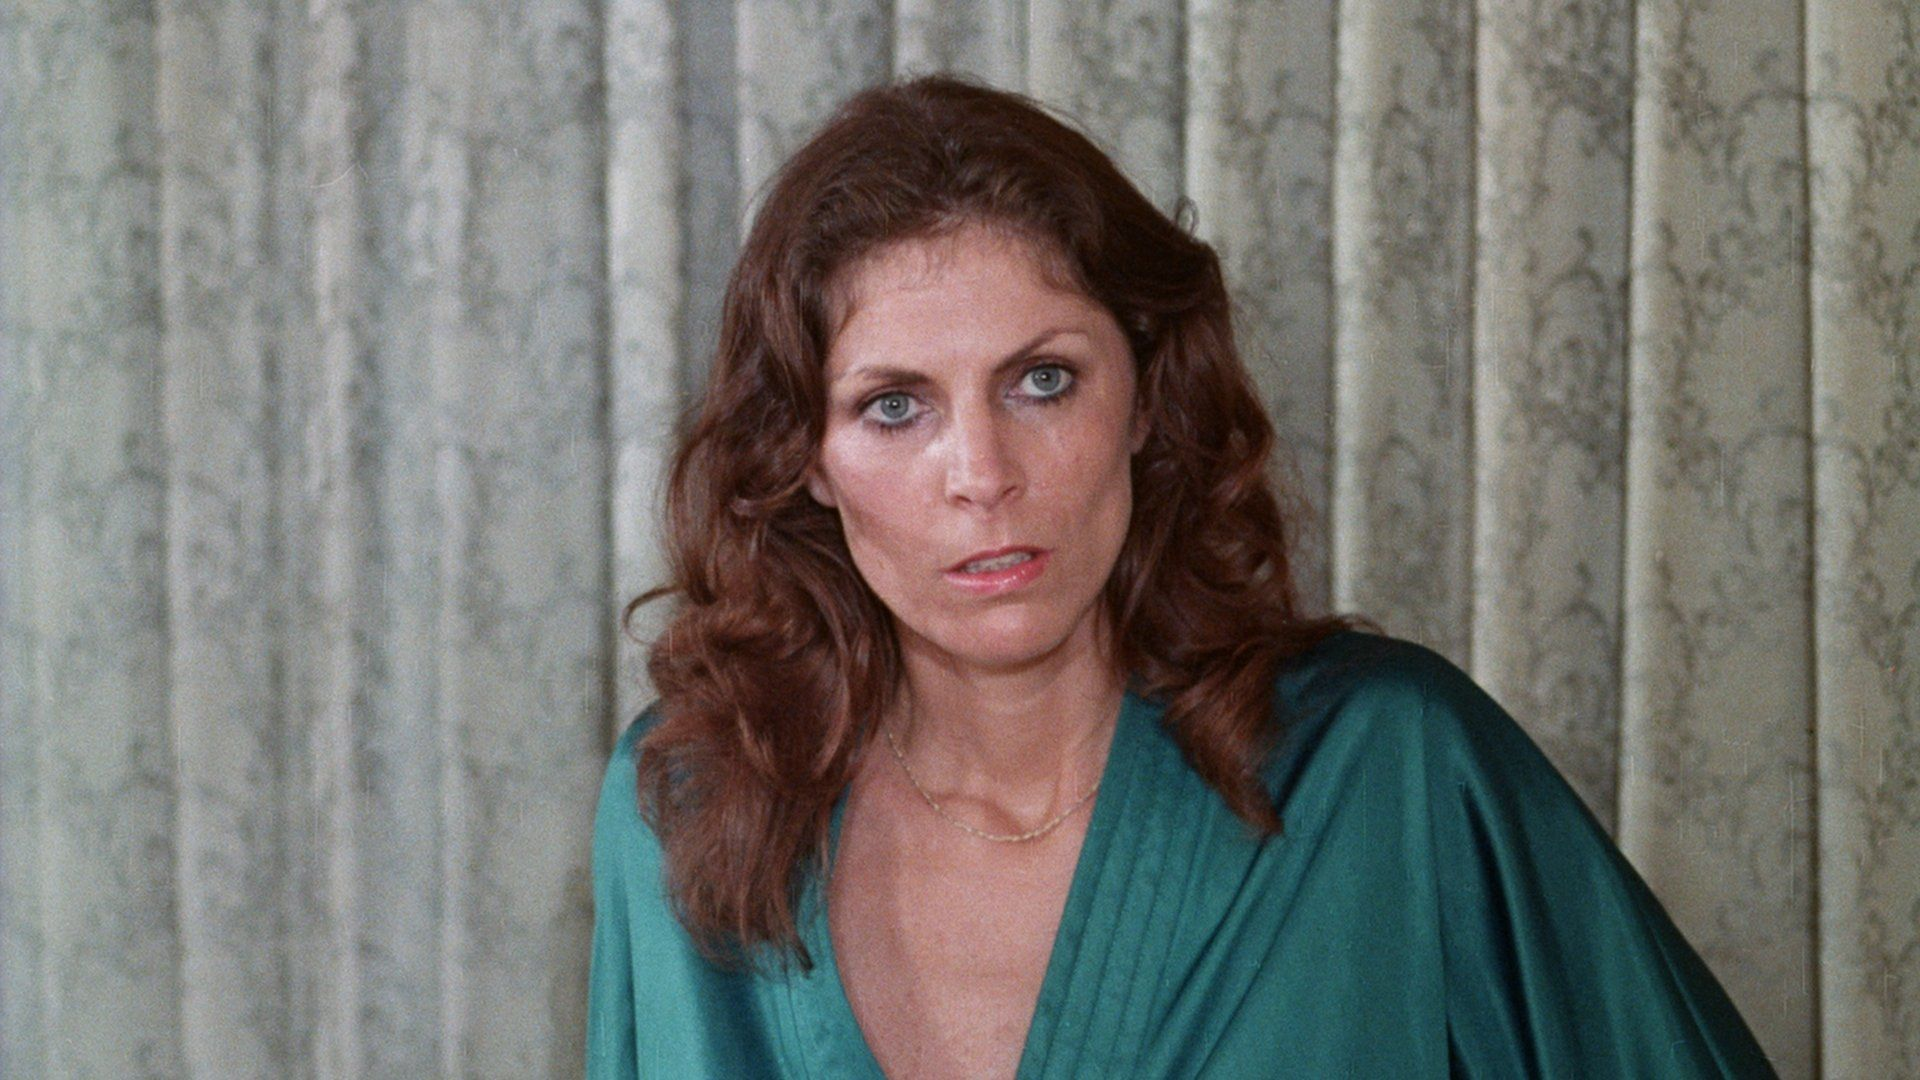 KAY PARKER in TABOO (1980) | CANON MOVIES